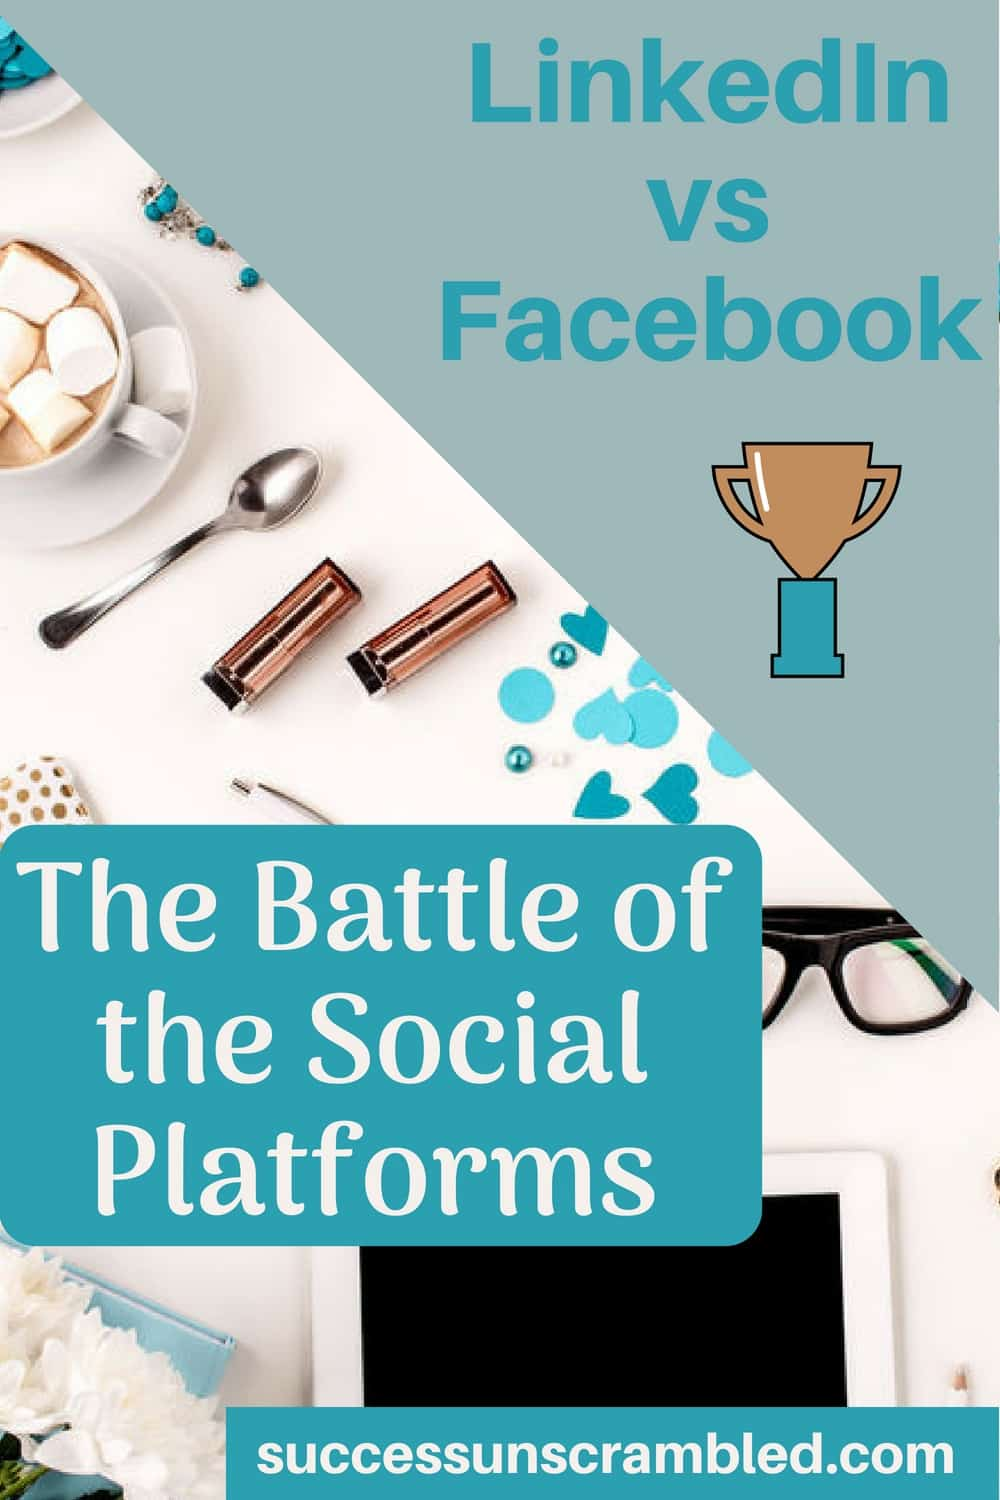 LinkedIn vs Facebook - The Battle of the Social Platforms